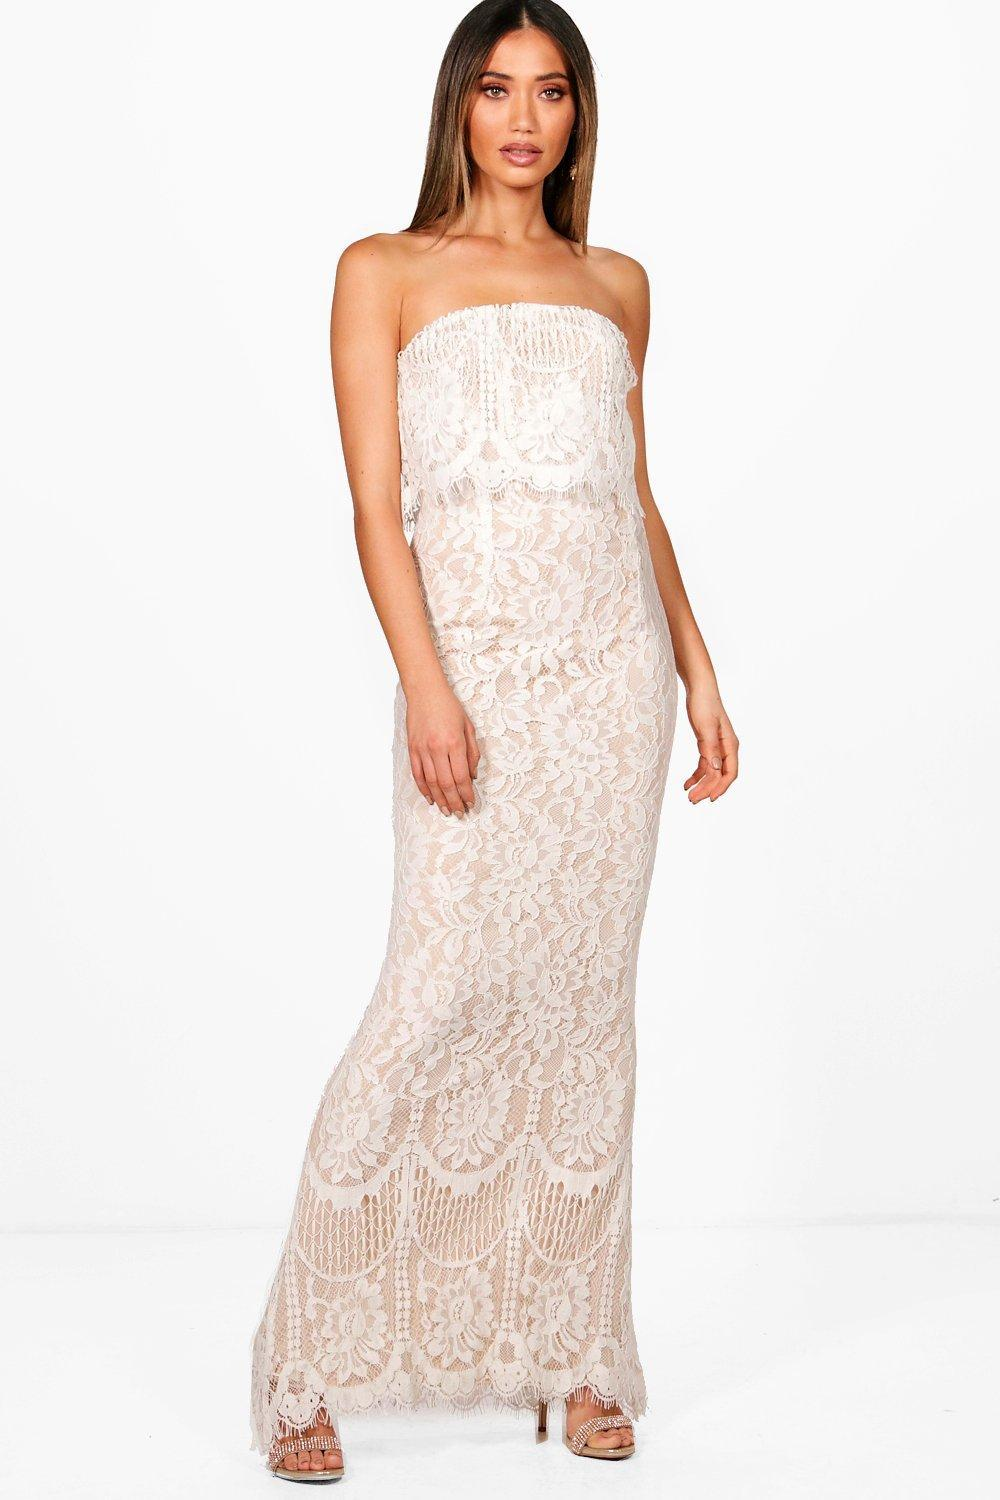 d1d049779ab902 Gallery. Previously sold at  Boohoo · Women s Bandeau Dresses ...